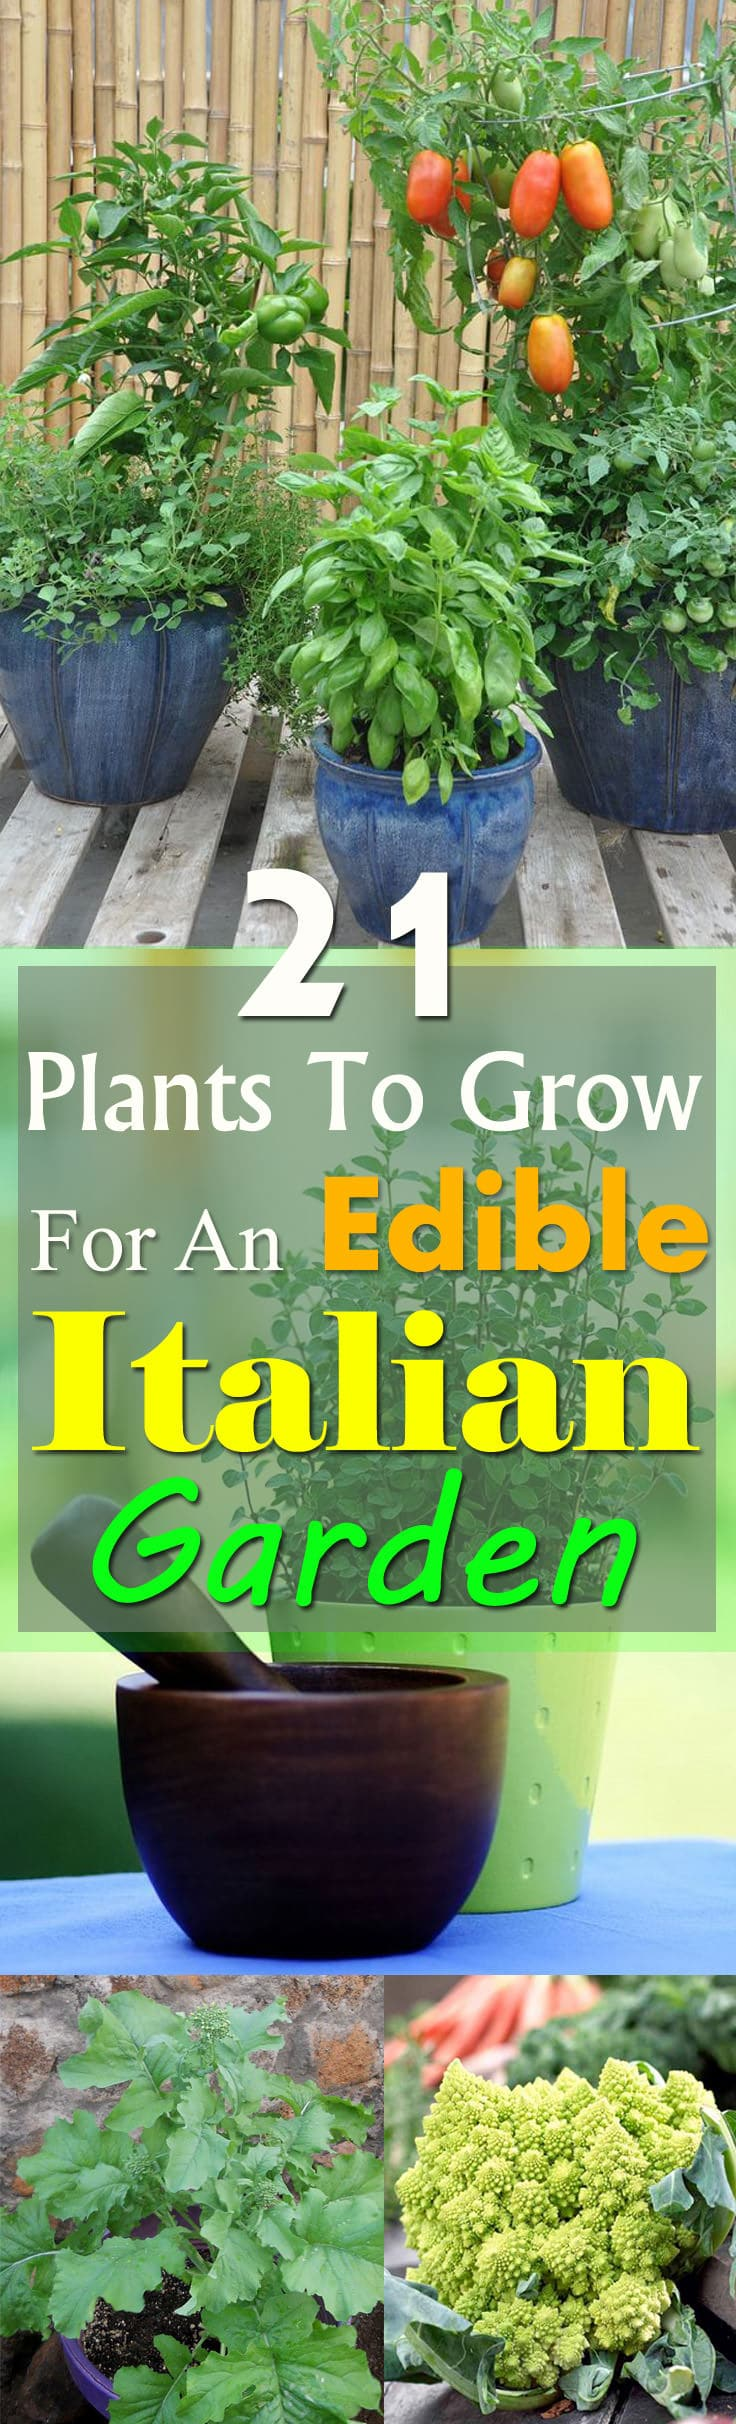 If you love Italian food, grow an Edible Italian Garden to have a fresh supply of tastiest vegetables and herbs. Even if you're short of space, you can grow them in containers!